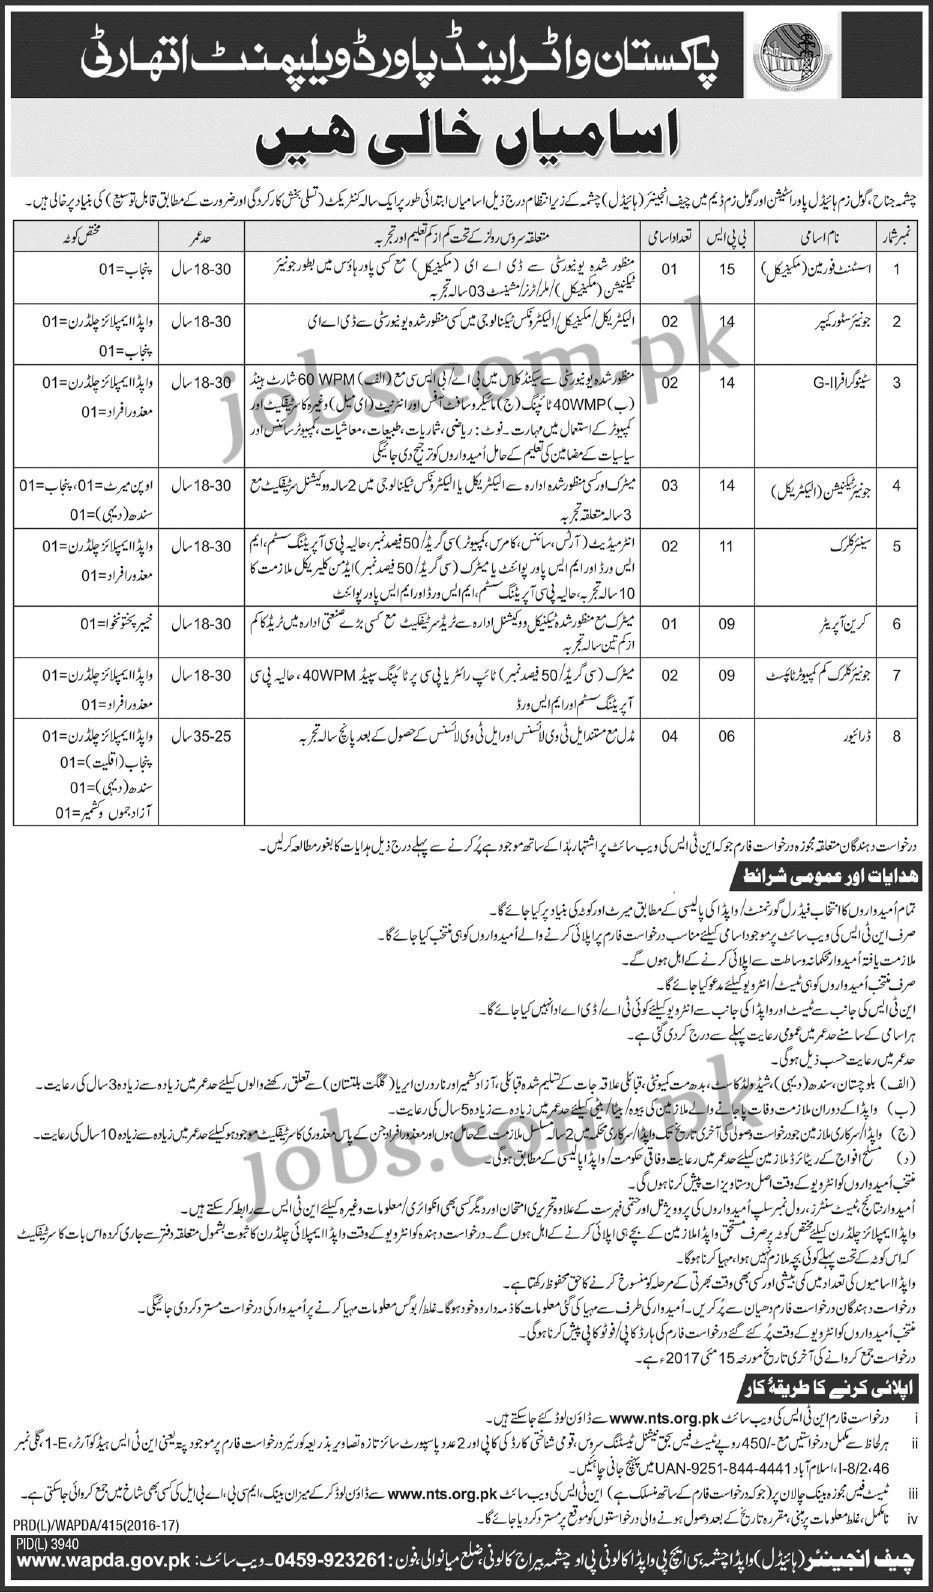 17 Jobs For 17 Year Olds That Will Pay For College: WAPDA Jobs 2017 (17+ Vacancies) In Multiple Power Stations